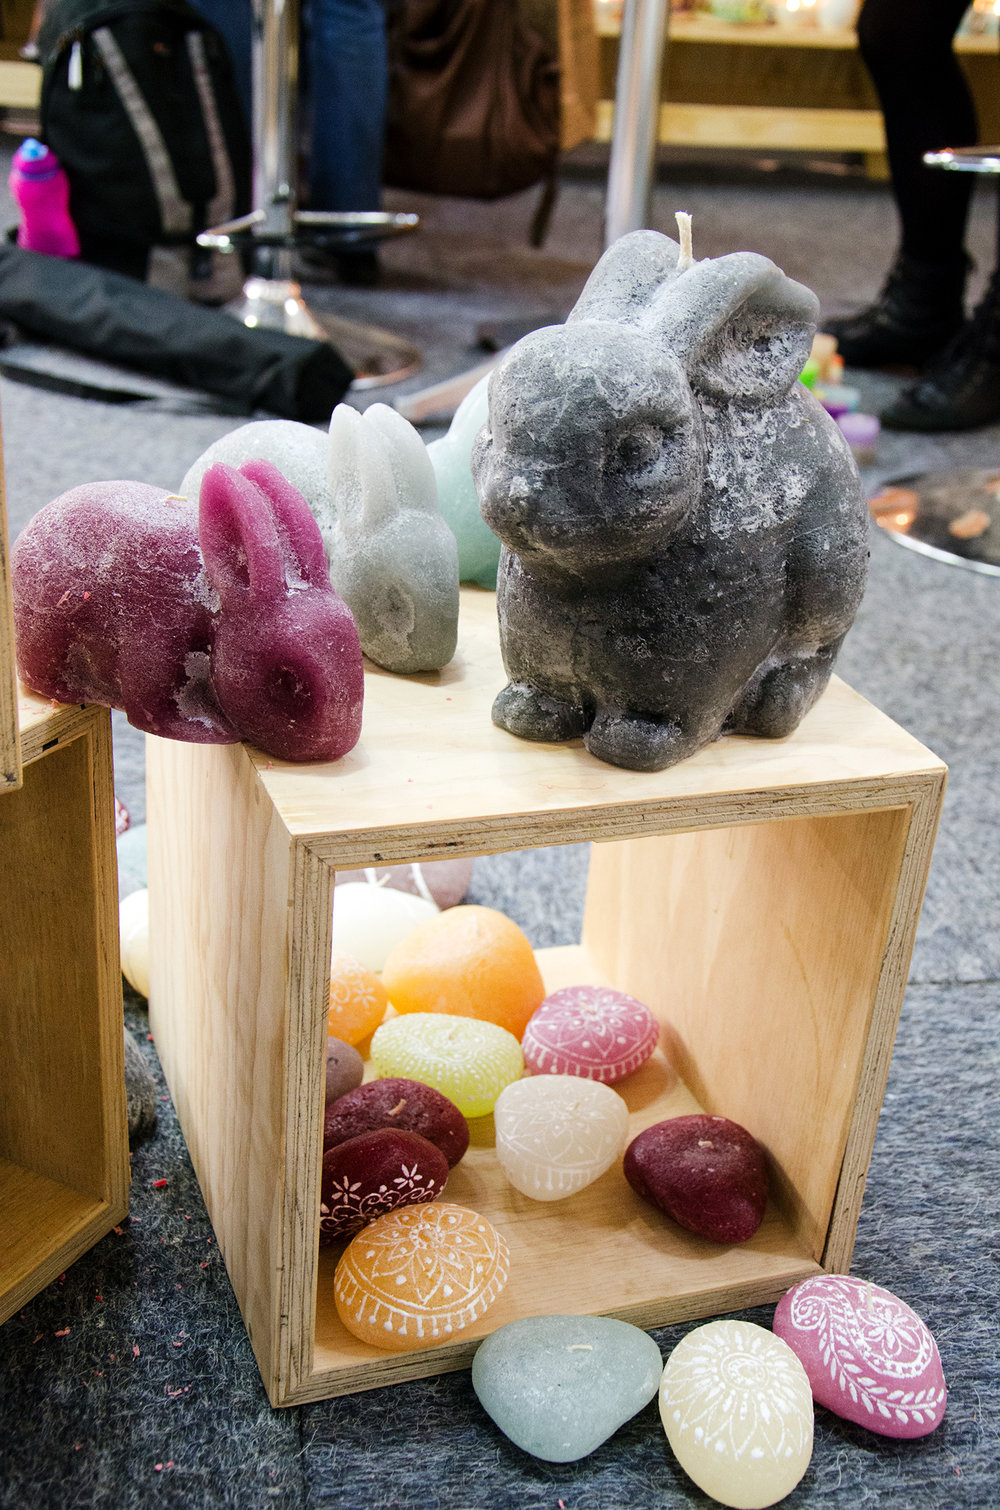 kapula-handmade-figurine-candles-bunny-rabbit-pebbles.jpg